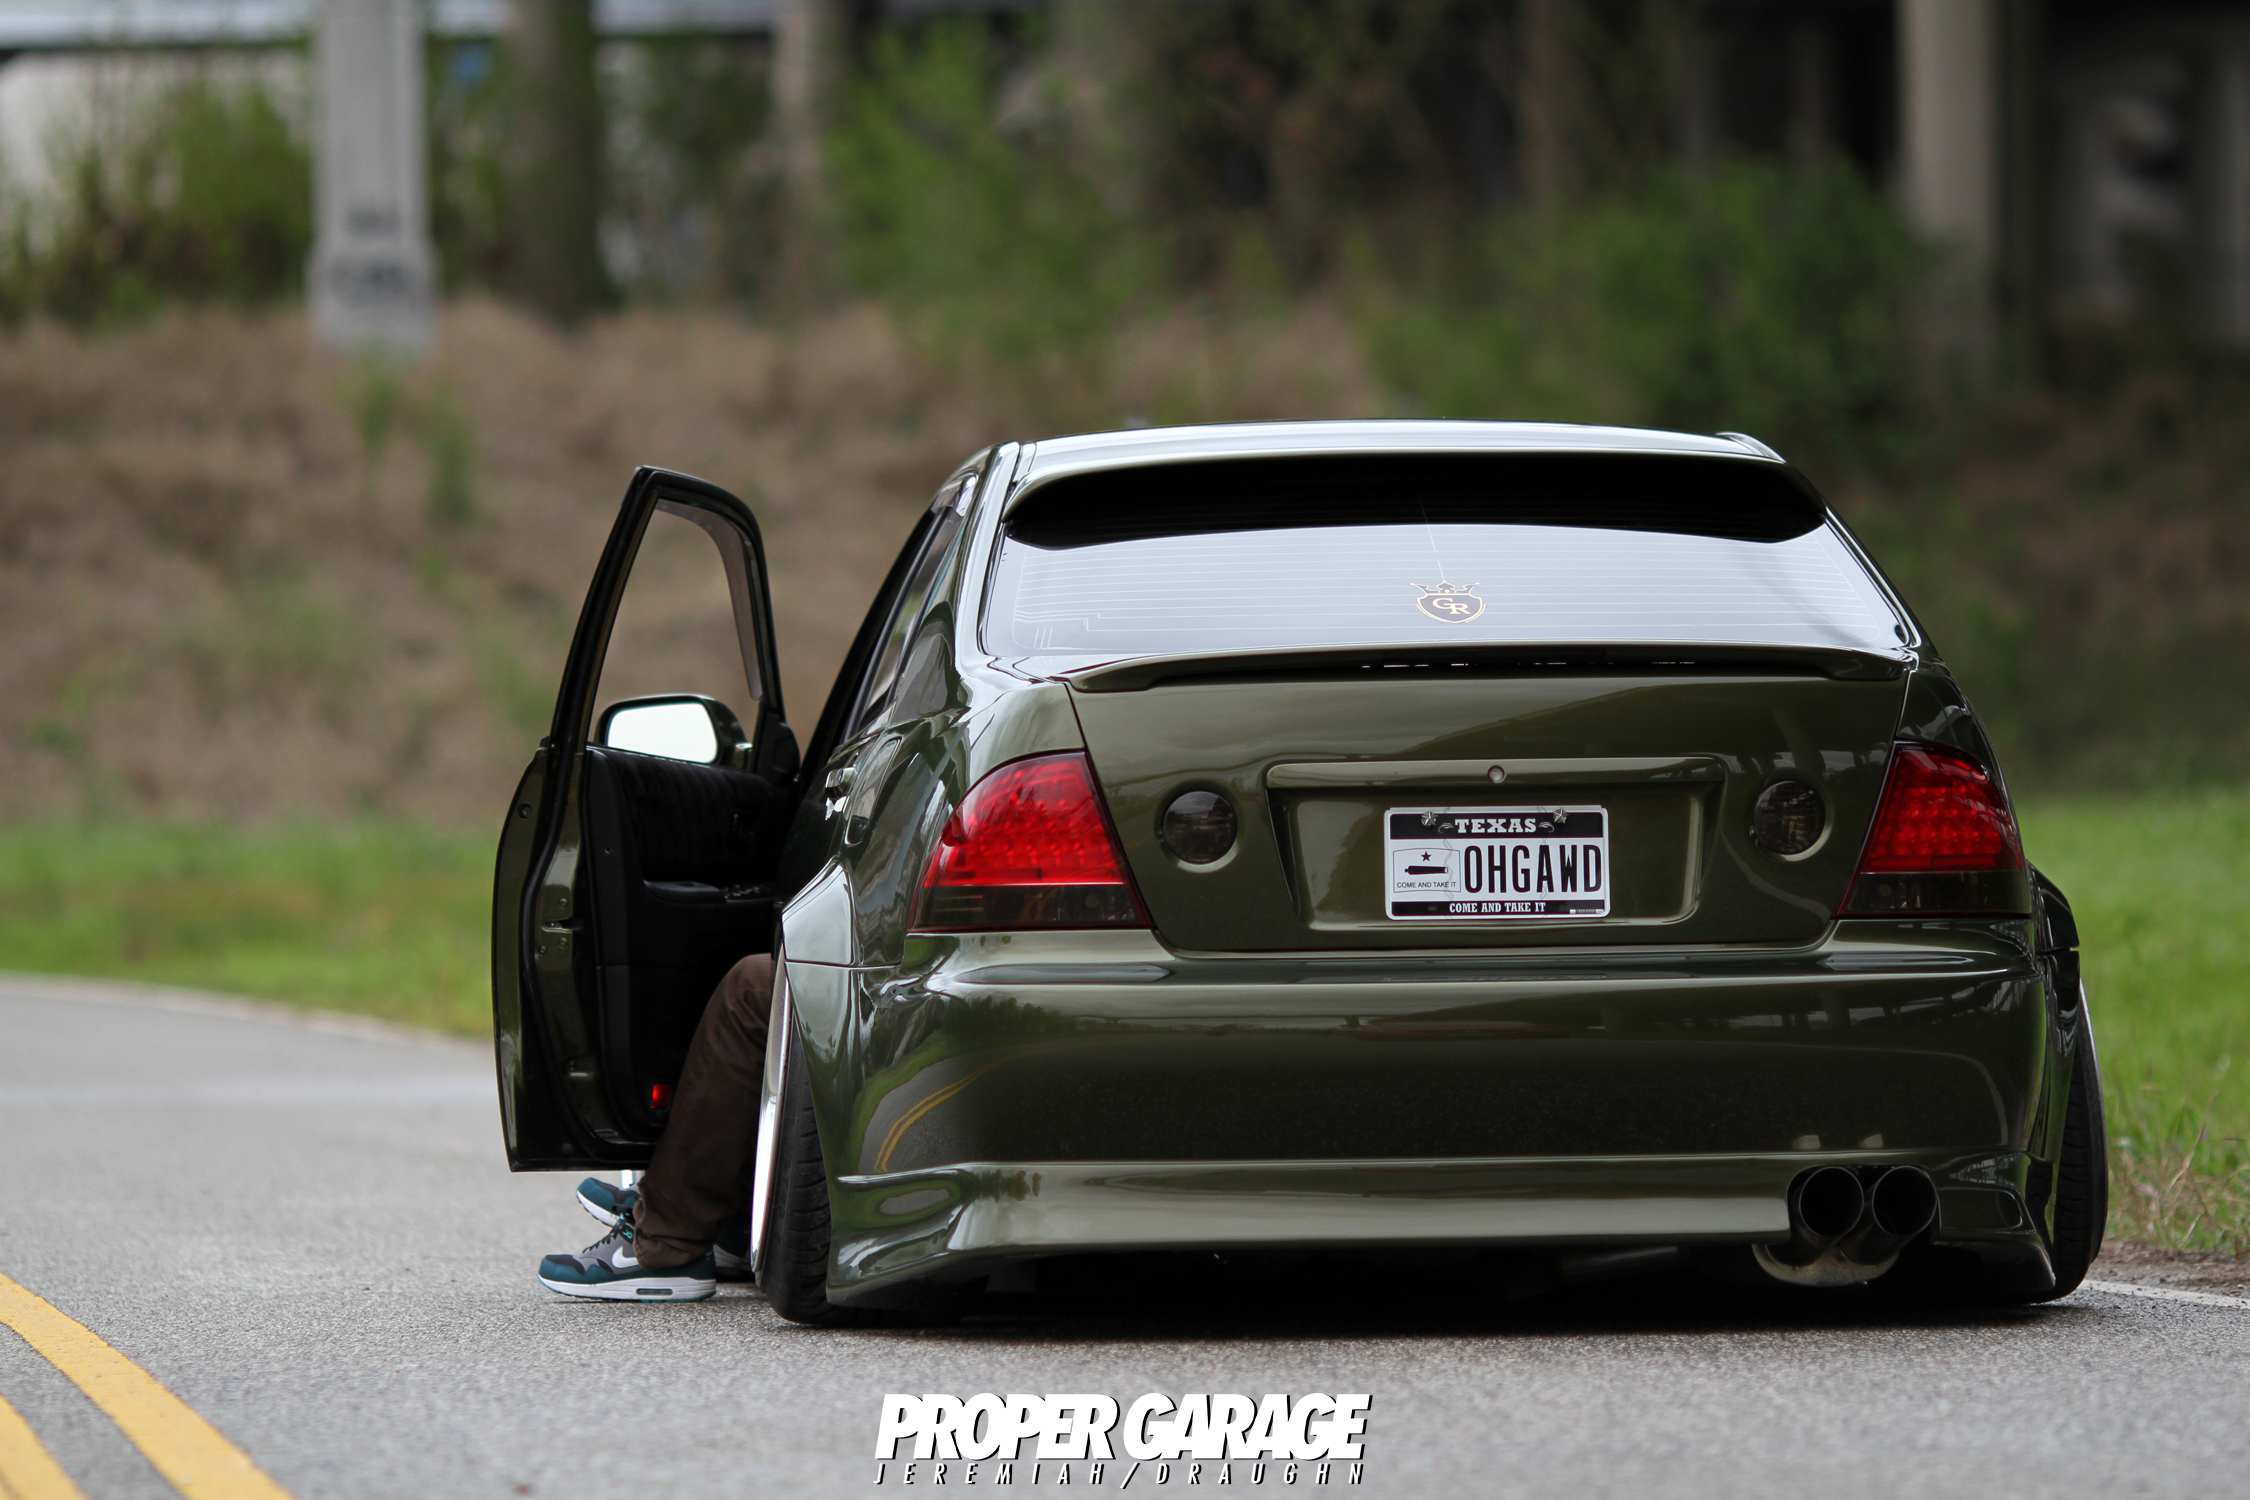 Tx Widebody Lexus Is300 Make Your Own Beautiful  HD Wallpapers, Images Over 1000+ [ralydesign.ml]